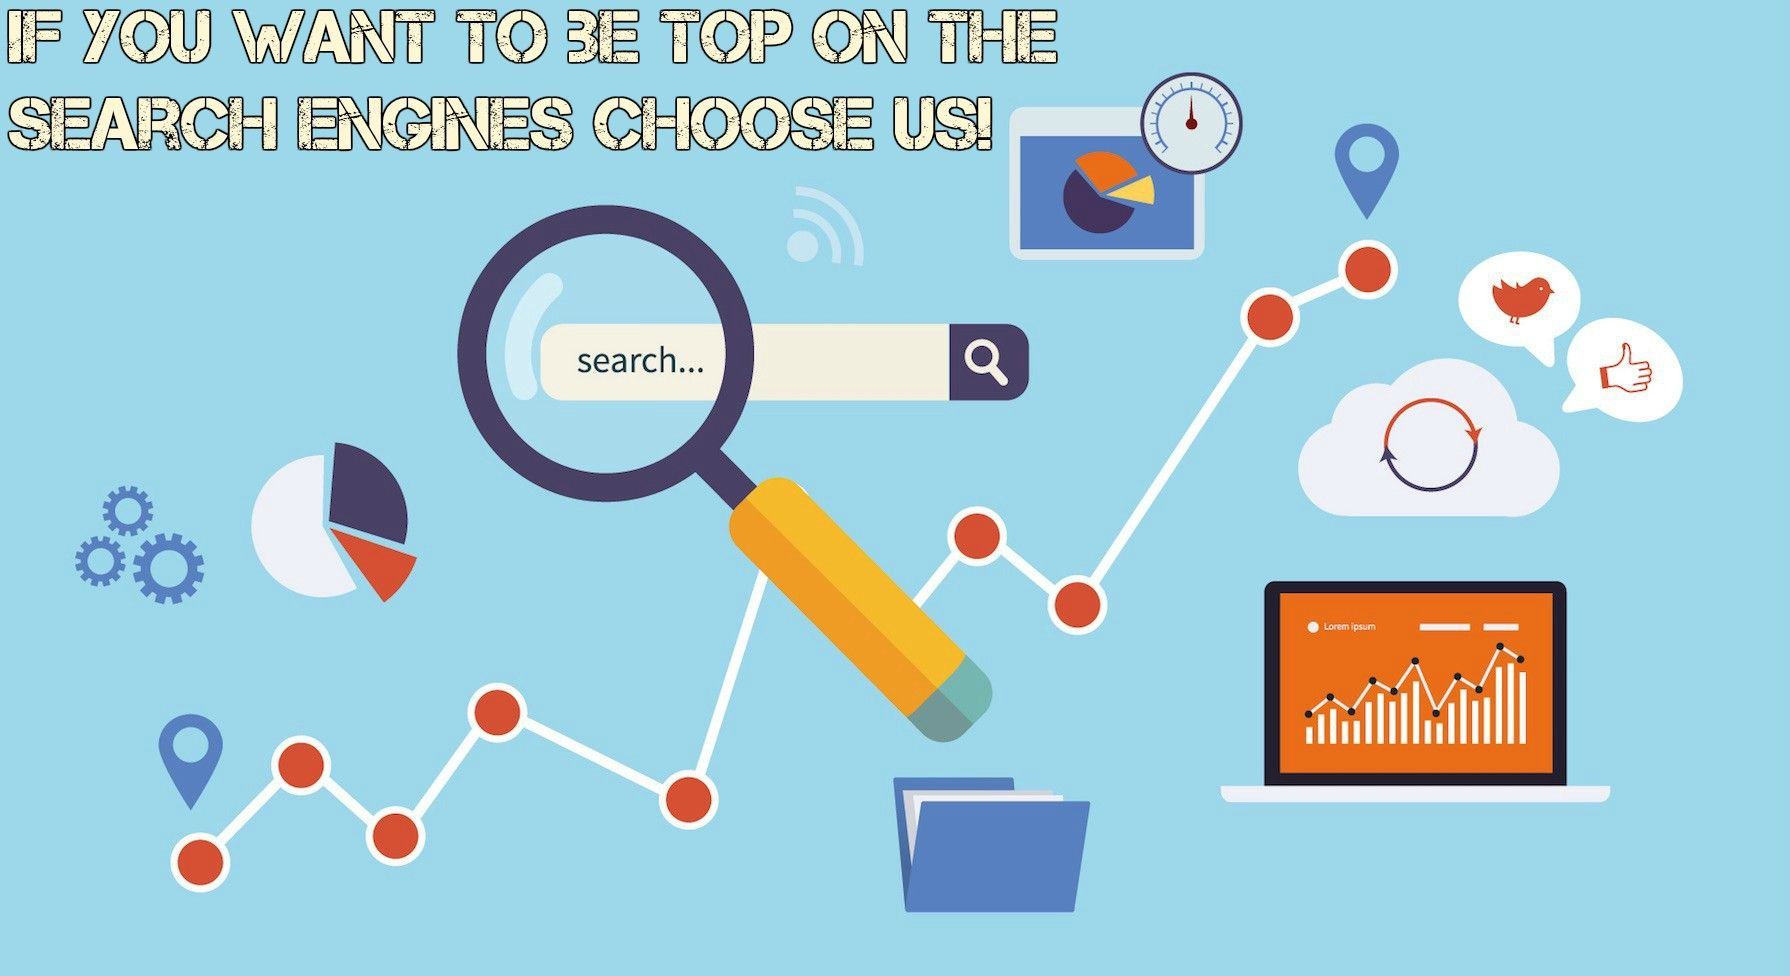 Seo Web Design Digital Marketing With Images Best Seo Services Search Engine Optimization Seo Digital Marketing Services